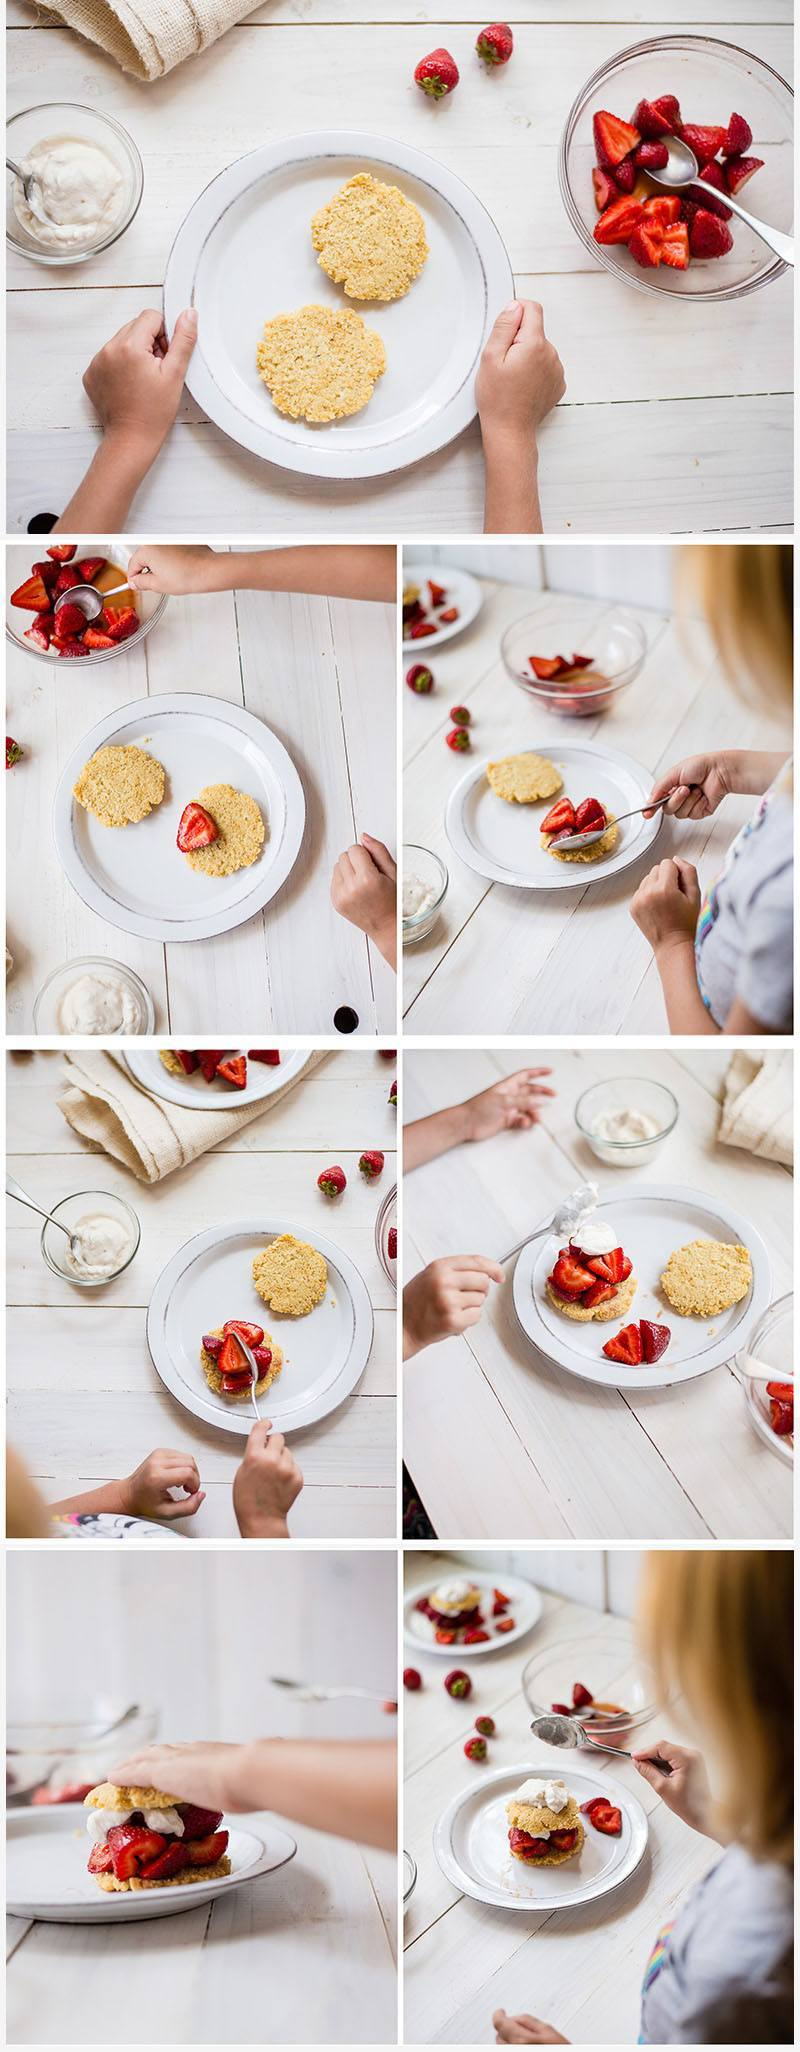 Step by step photos on how to make and assemble gluten free strawberry shortcake